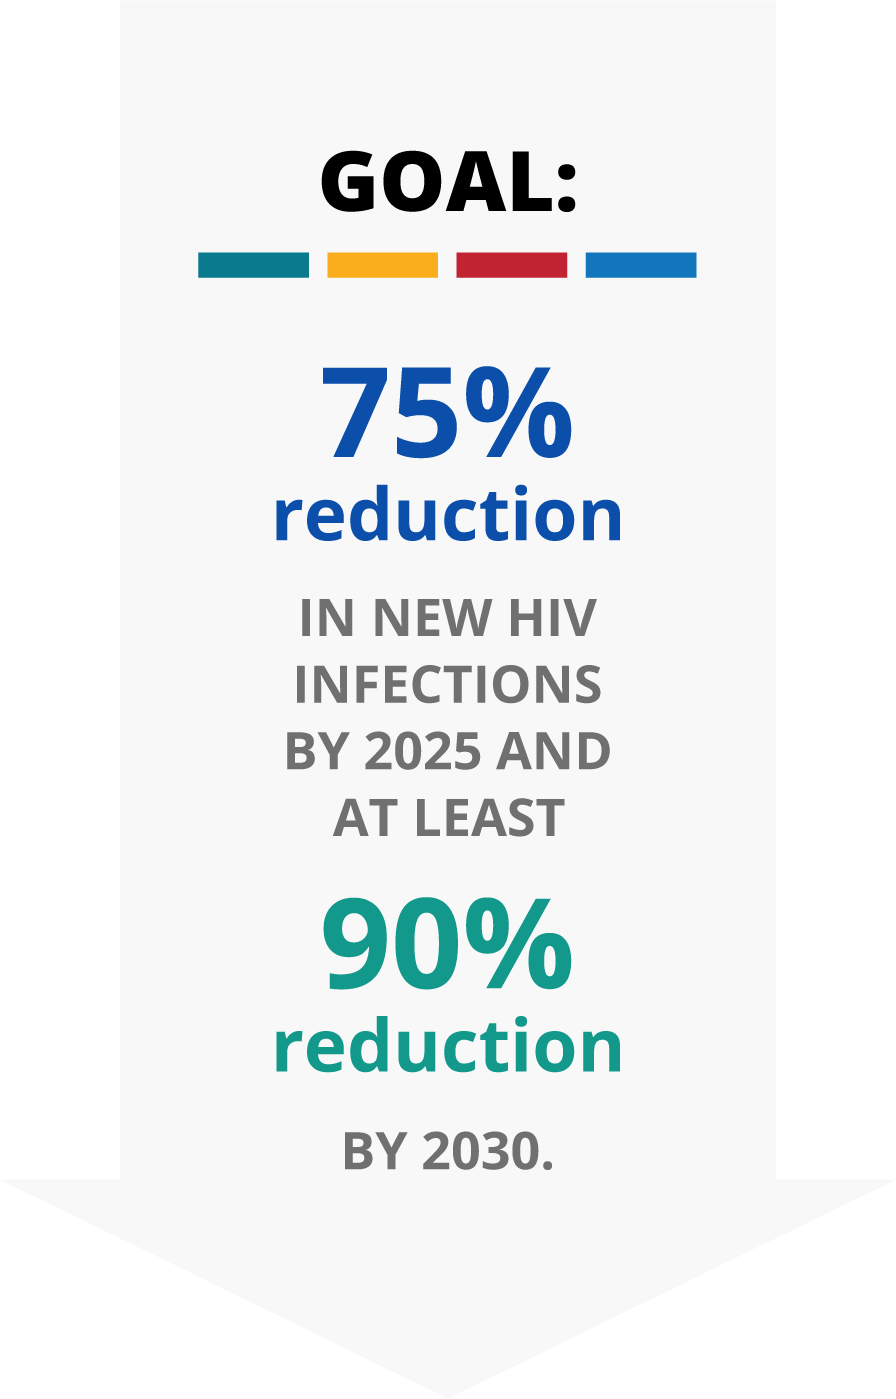 Goal: 75% reduction in new HIV infections by 2025 and at least 90% reduction by 2030.